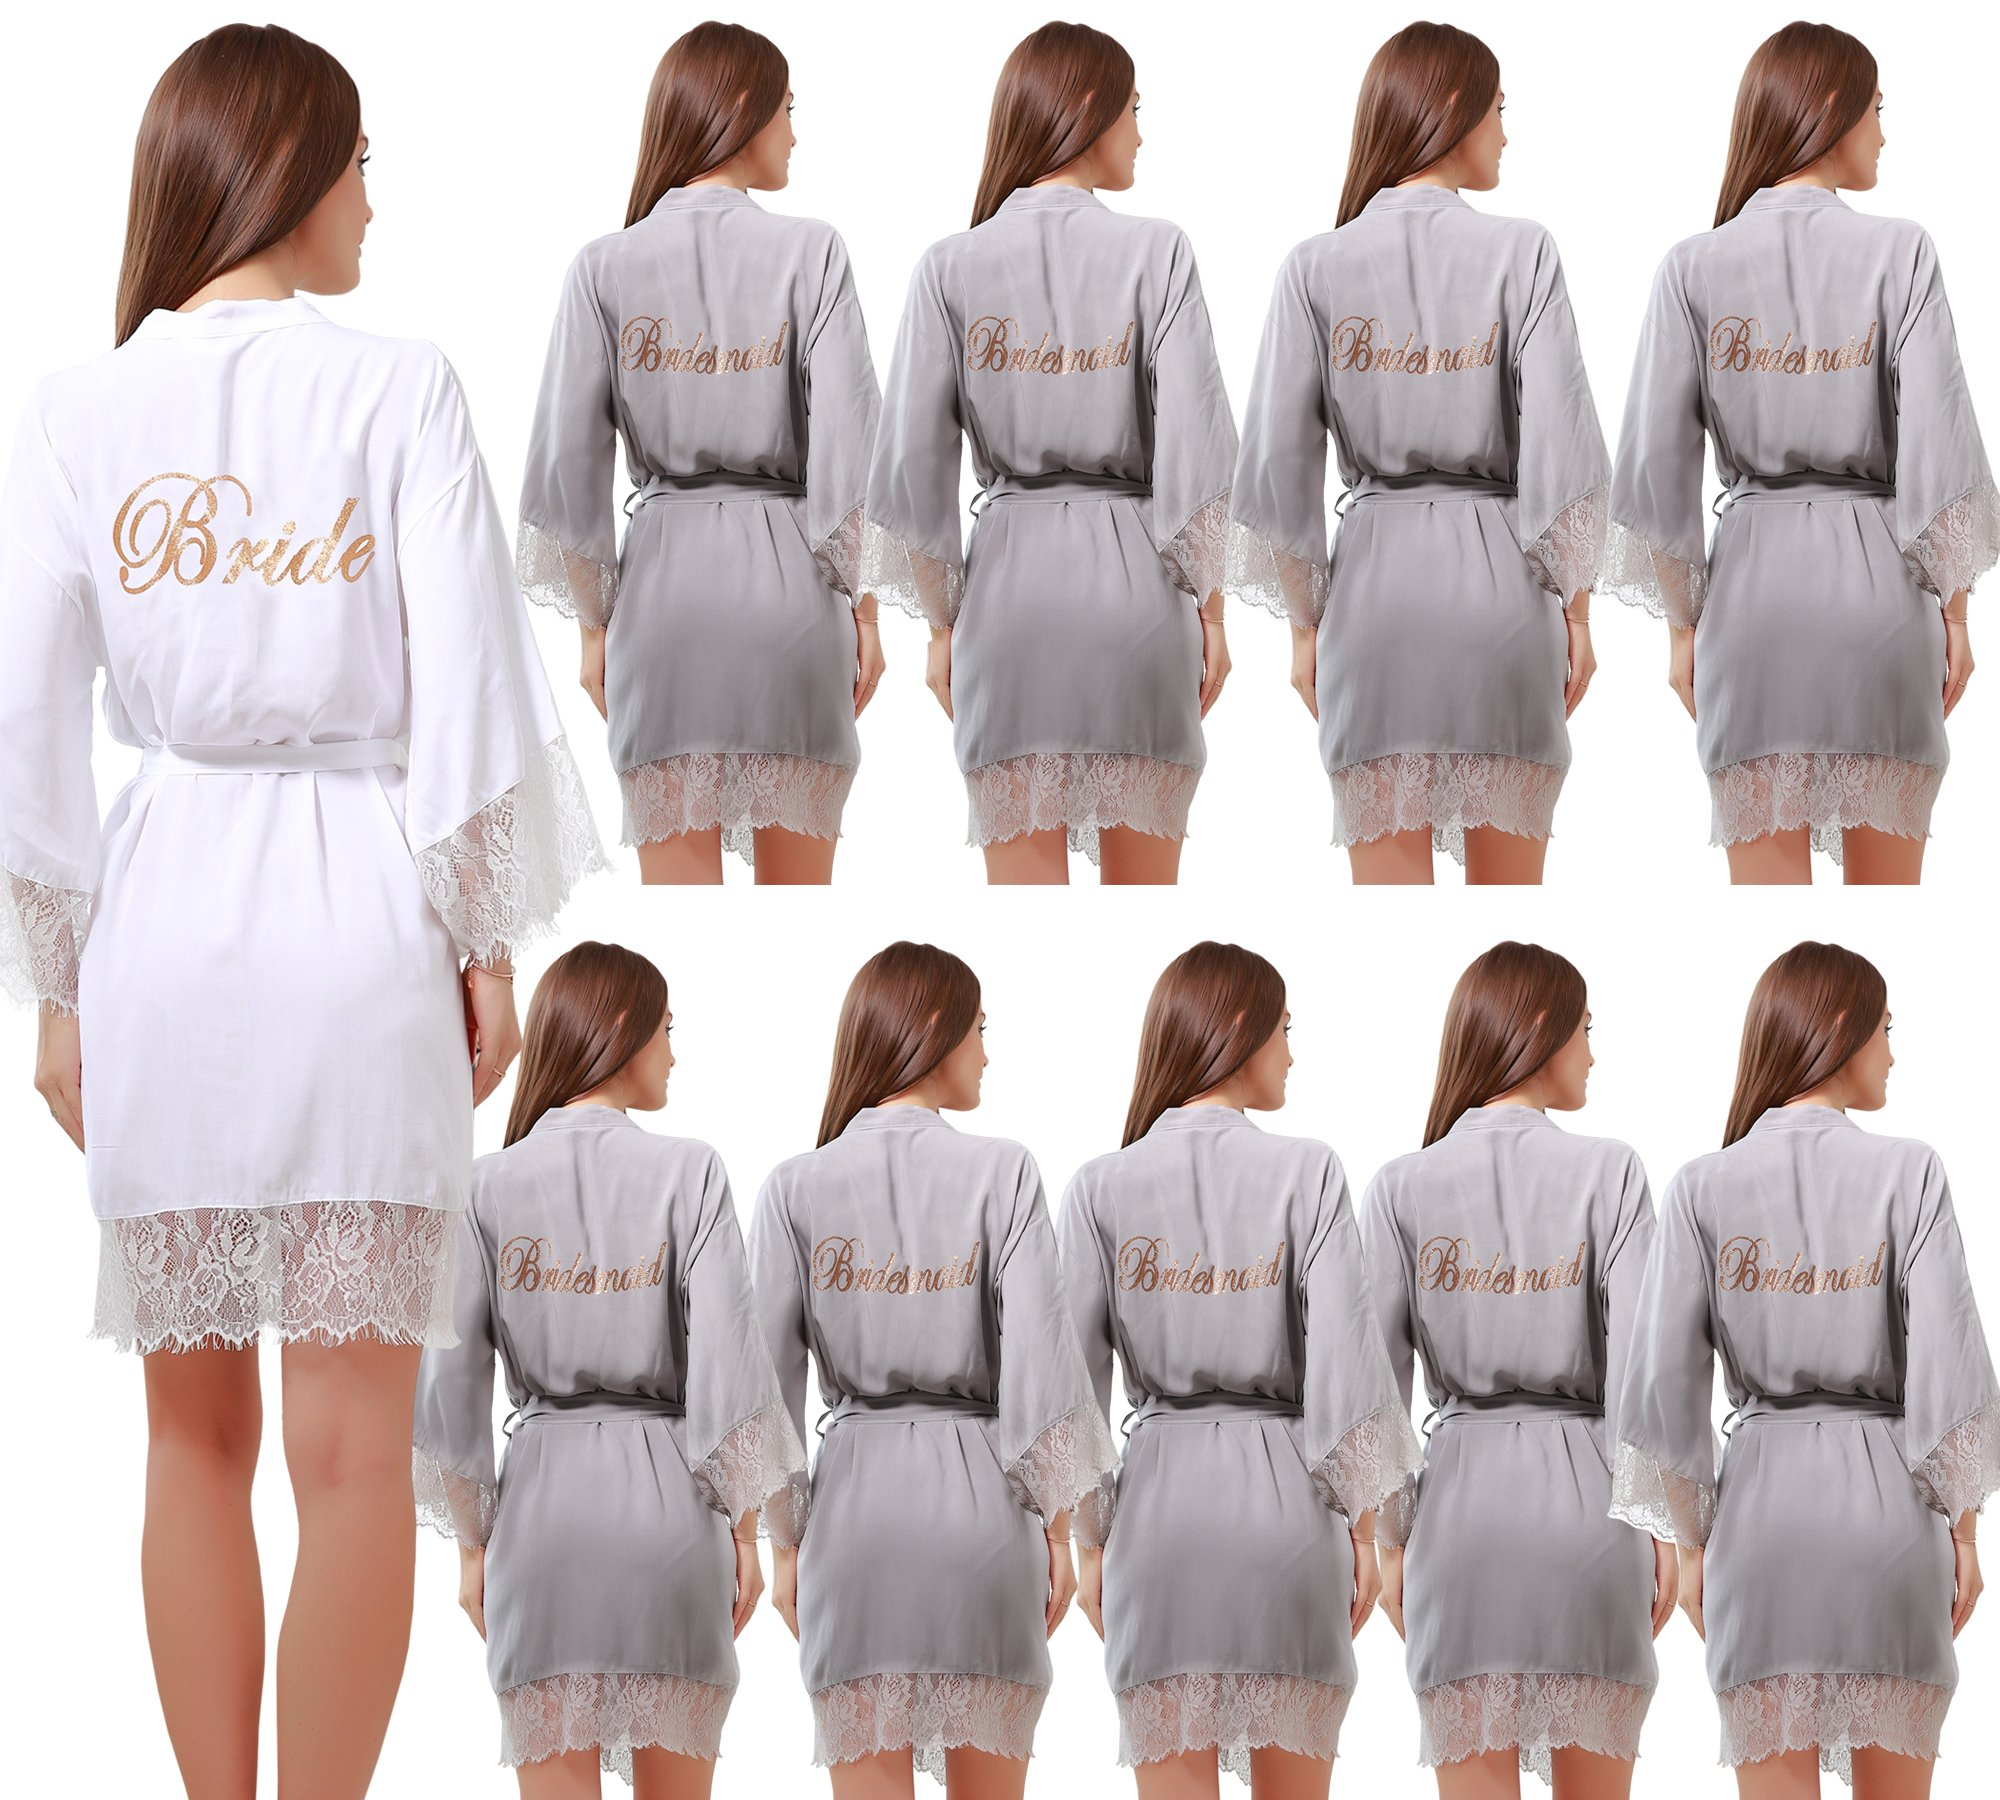 Set of 10 Women's Cotton Kimono Robes Wedding Party Gifts for bride and Bridesmaid with Lace Trim